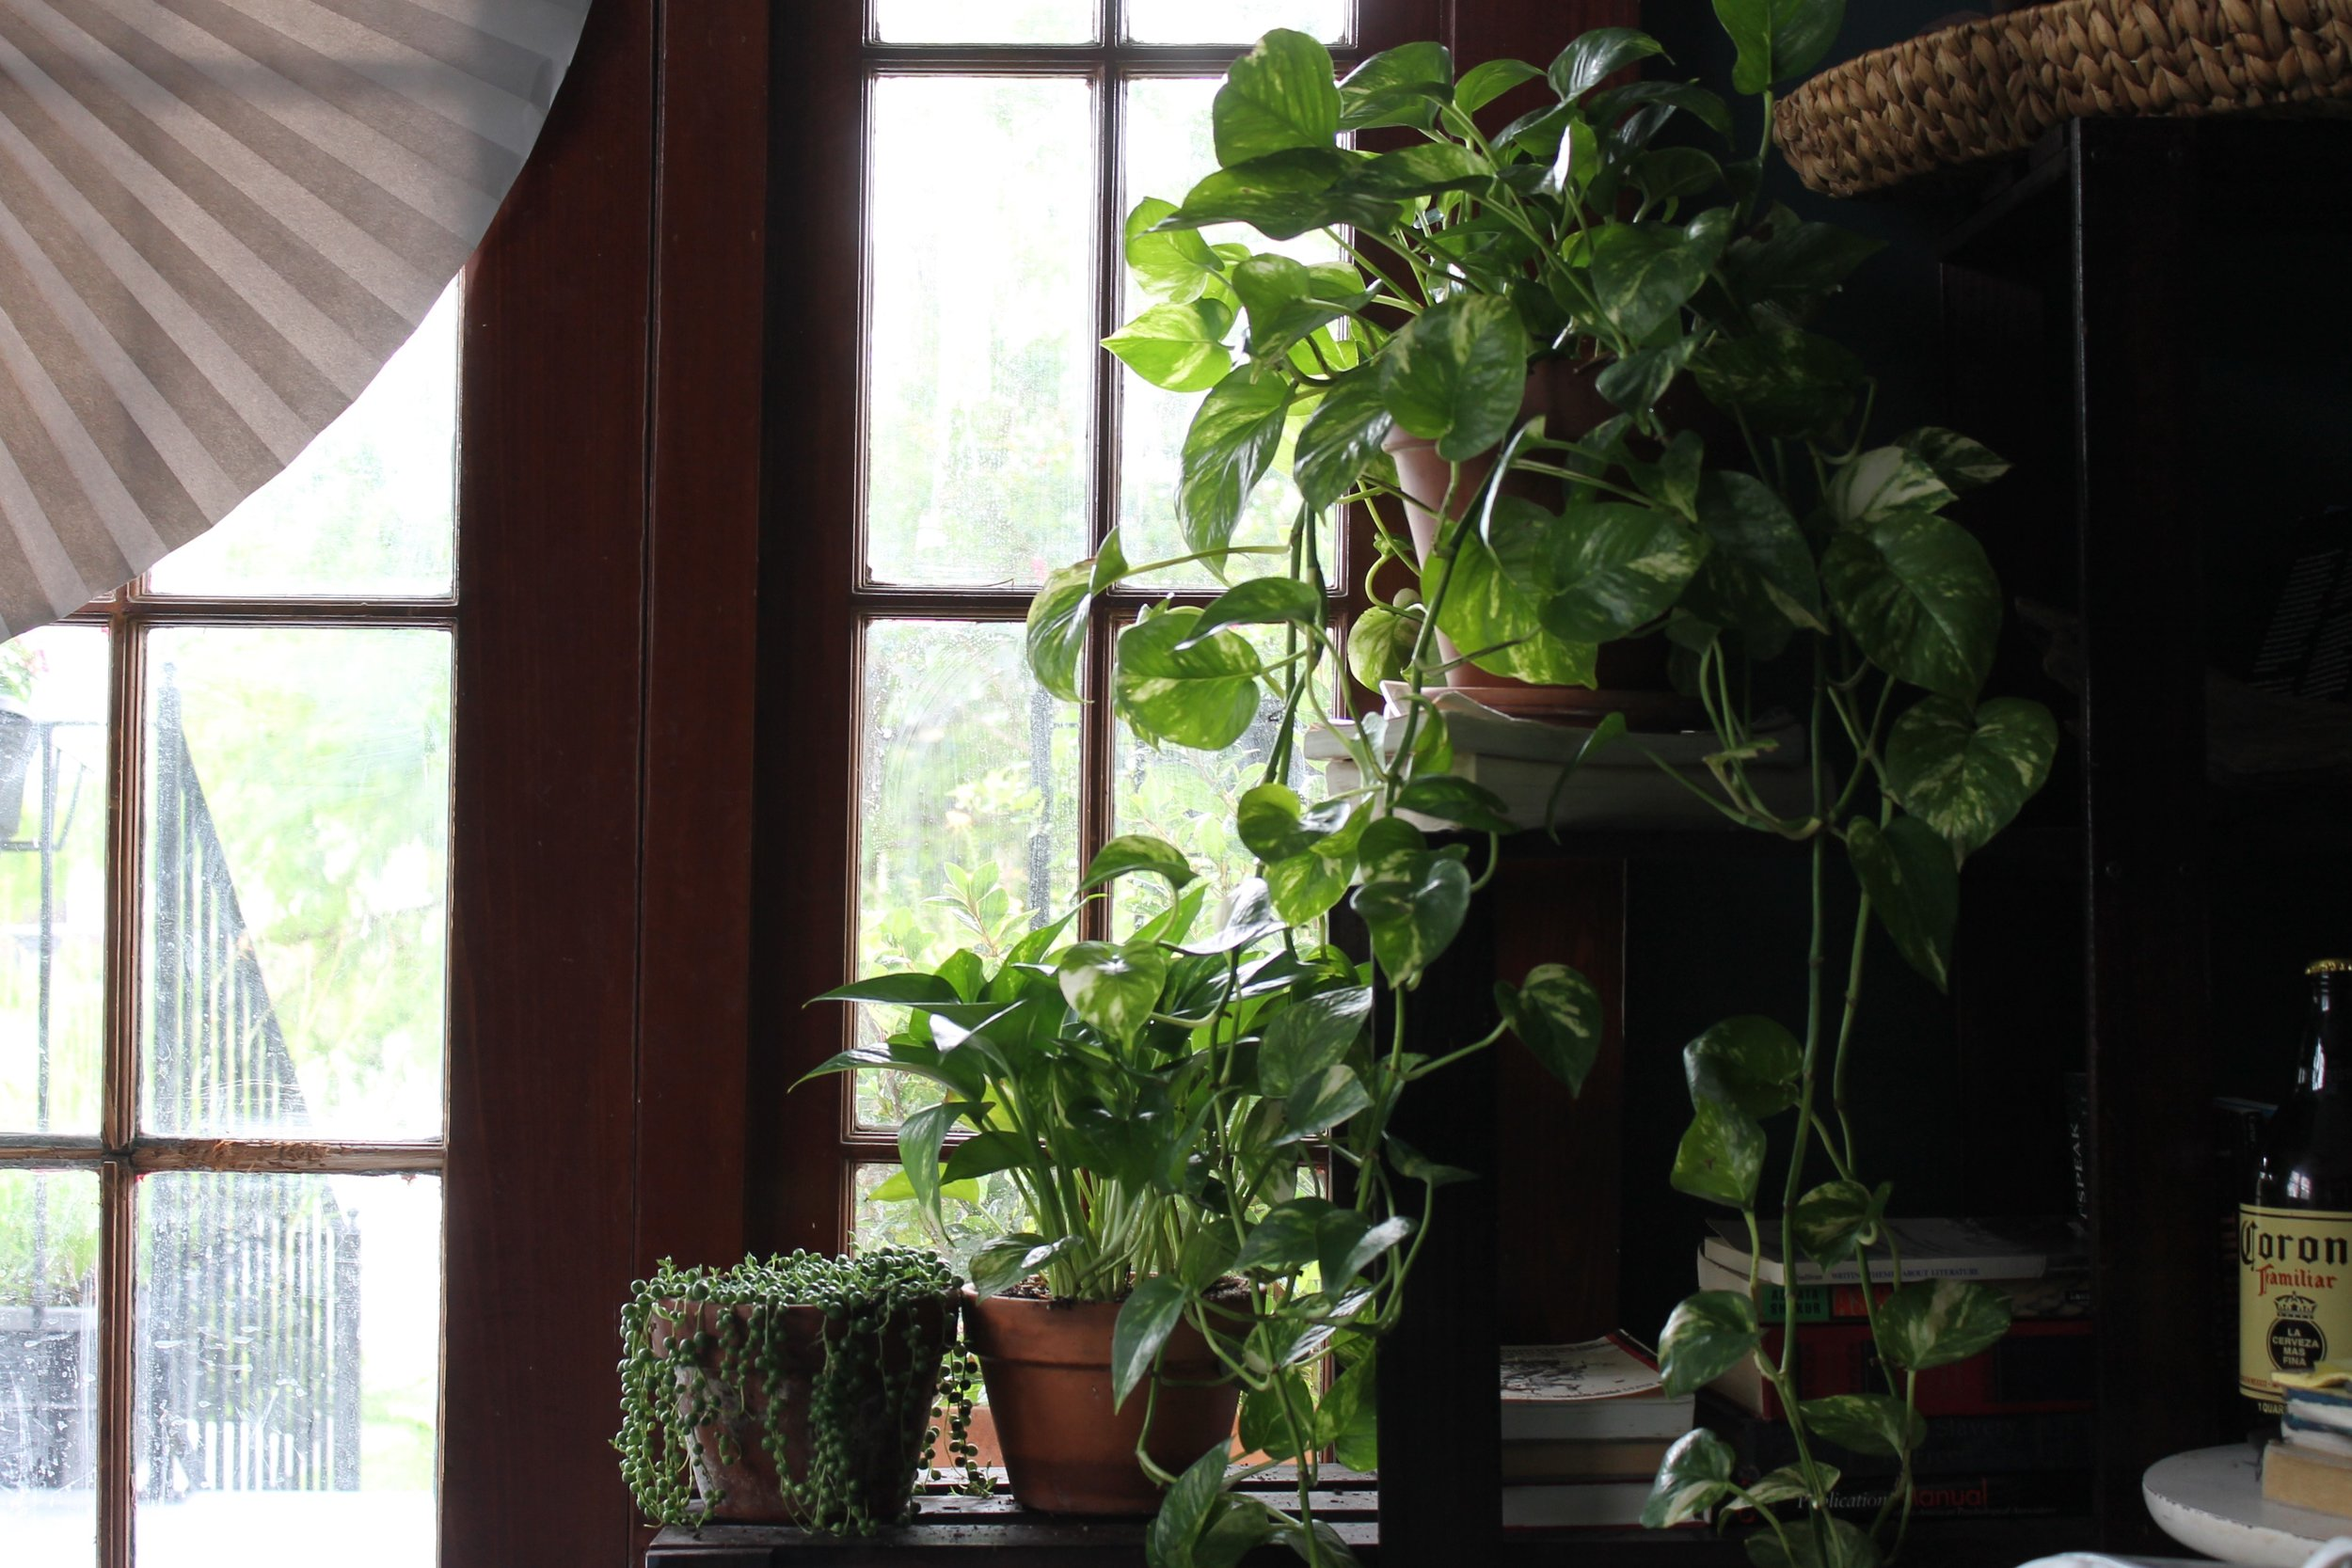 77a8a-blackpeoplewithplants_micheal_collectionofcollectionsblackpeoplewithplants_micheal_collectionofcollections.jpg